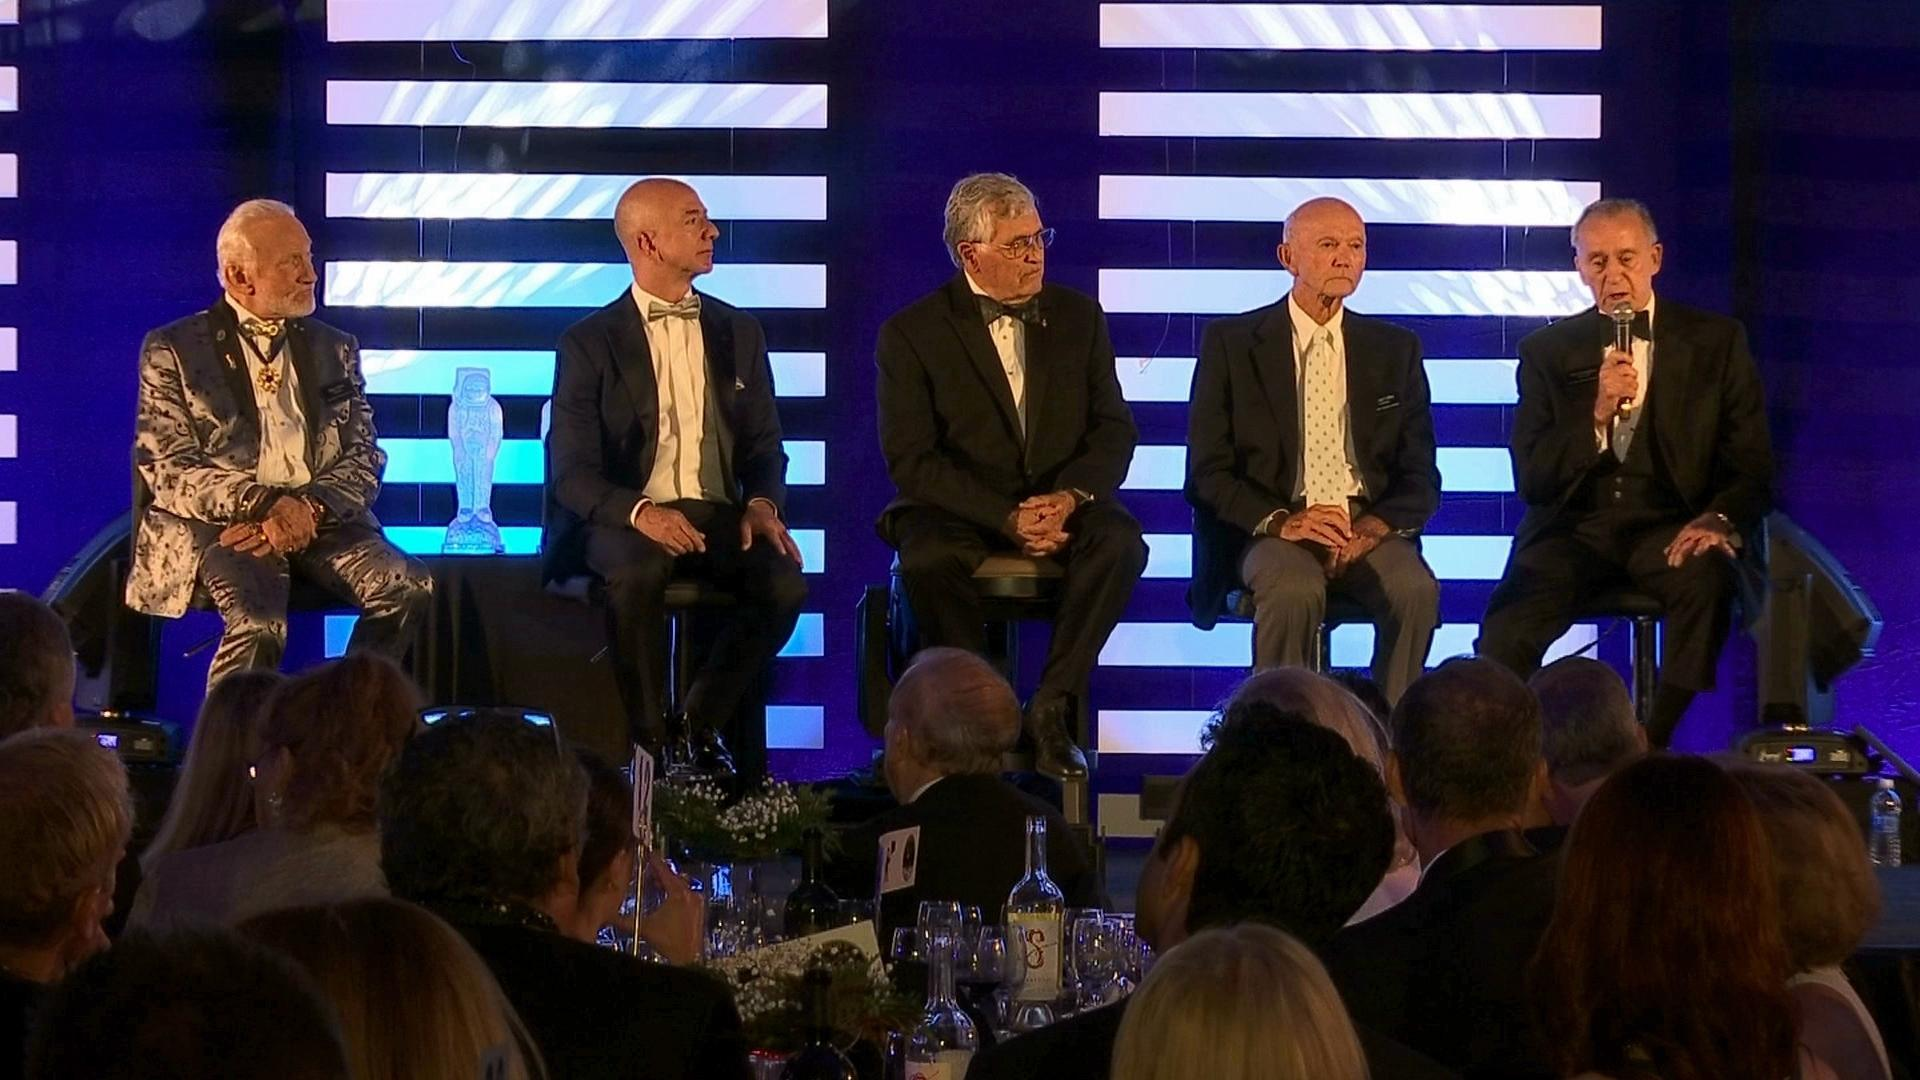 From left to right, Apollo 11 astronaut Buzz Aldrin, Amazon.com and Blue Origins founder Jeff Bezos, Apollo 17 astronaut Harrison Jack Schmitt, and Apollo 11 astronaut Michael Collins listen as Apollo 7 astronaut Walt Cunningham speaks during the commemoration for the upcoming anniversary of the 1969 mission to the moon and a gala for Aldrin's non-profit space education foundation, ShareSpace Foundation, at the Kennedy Space Center in Cape Canaveral, Fla., on Saturday, July 15, 2017. (AP Photo/Alex Sanz)